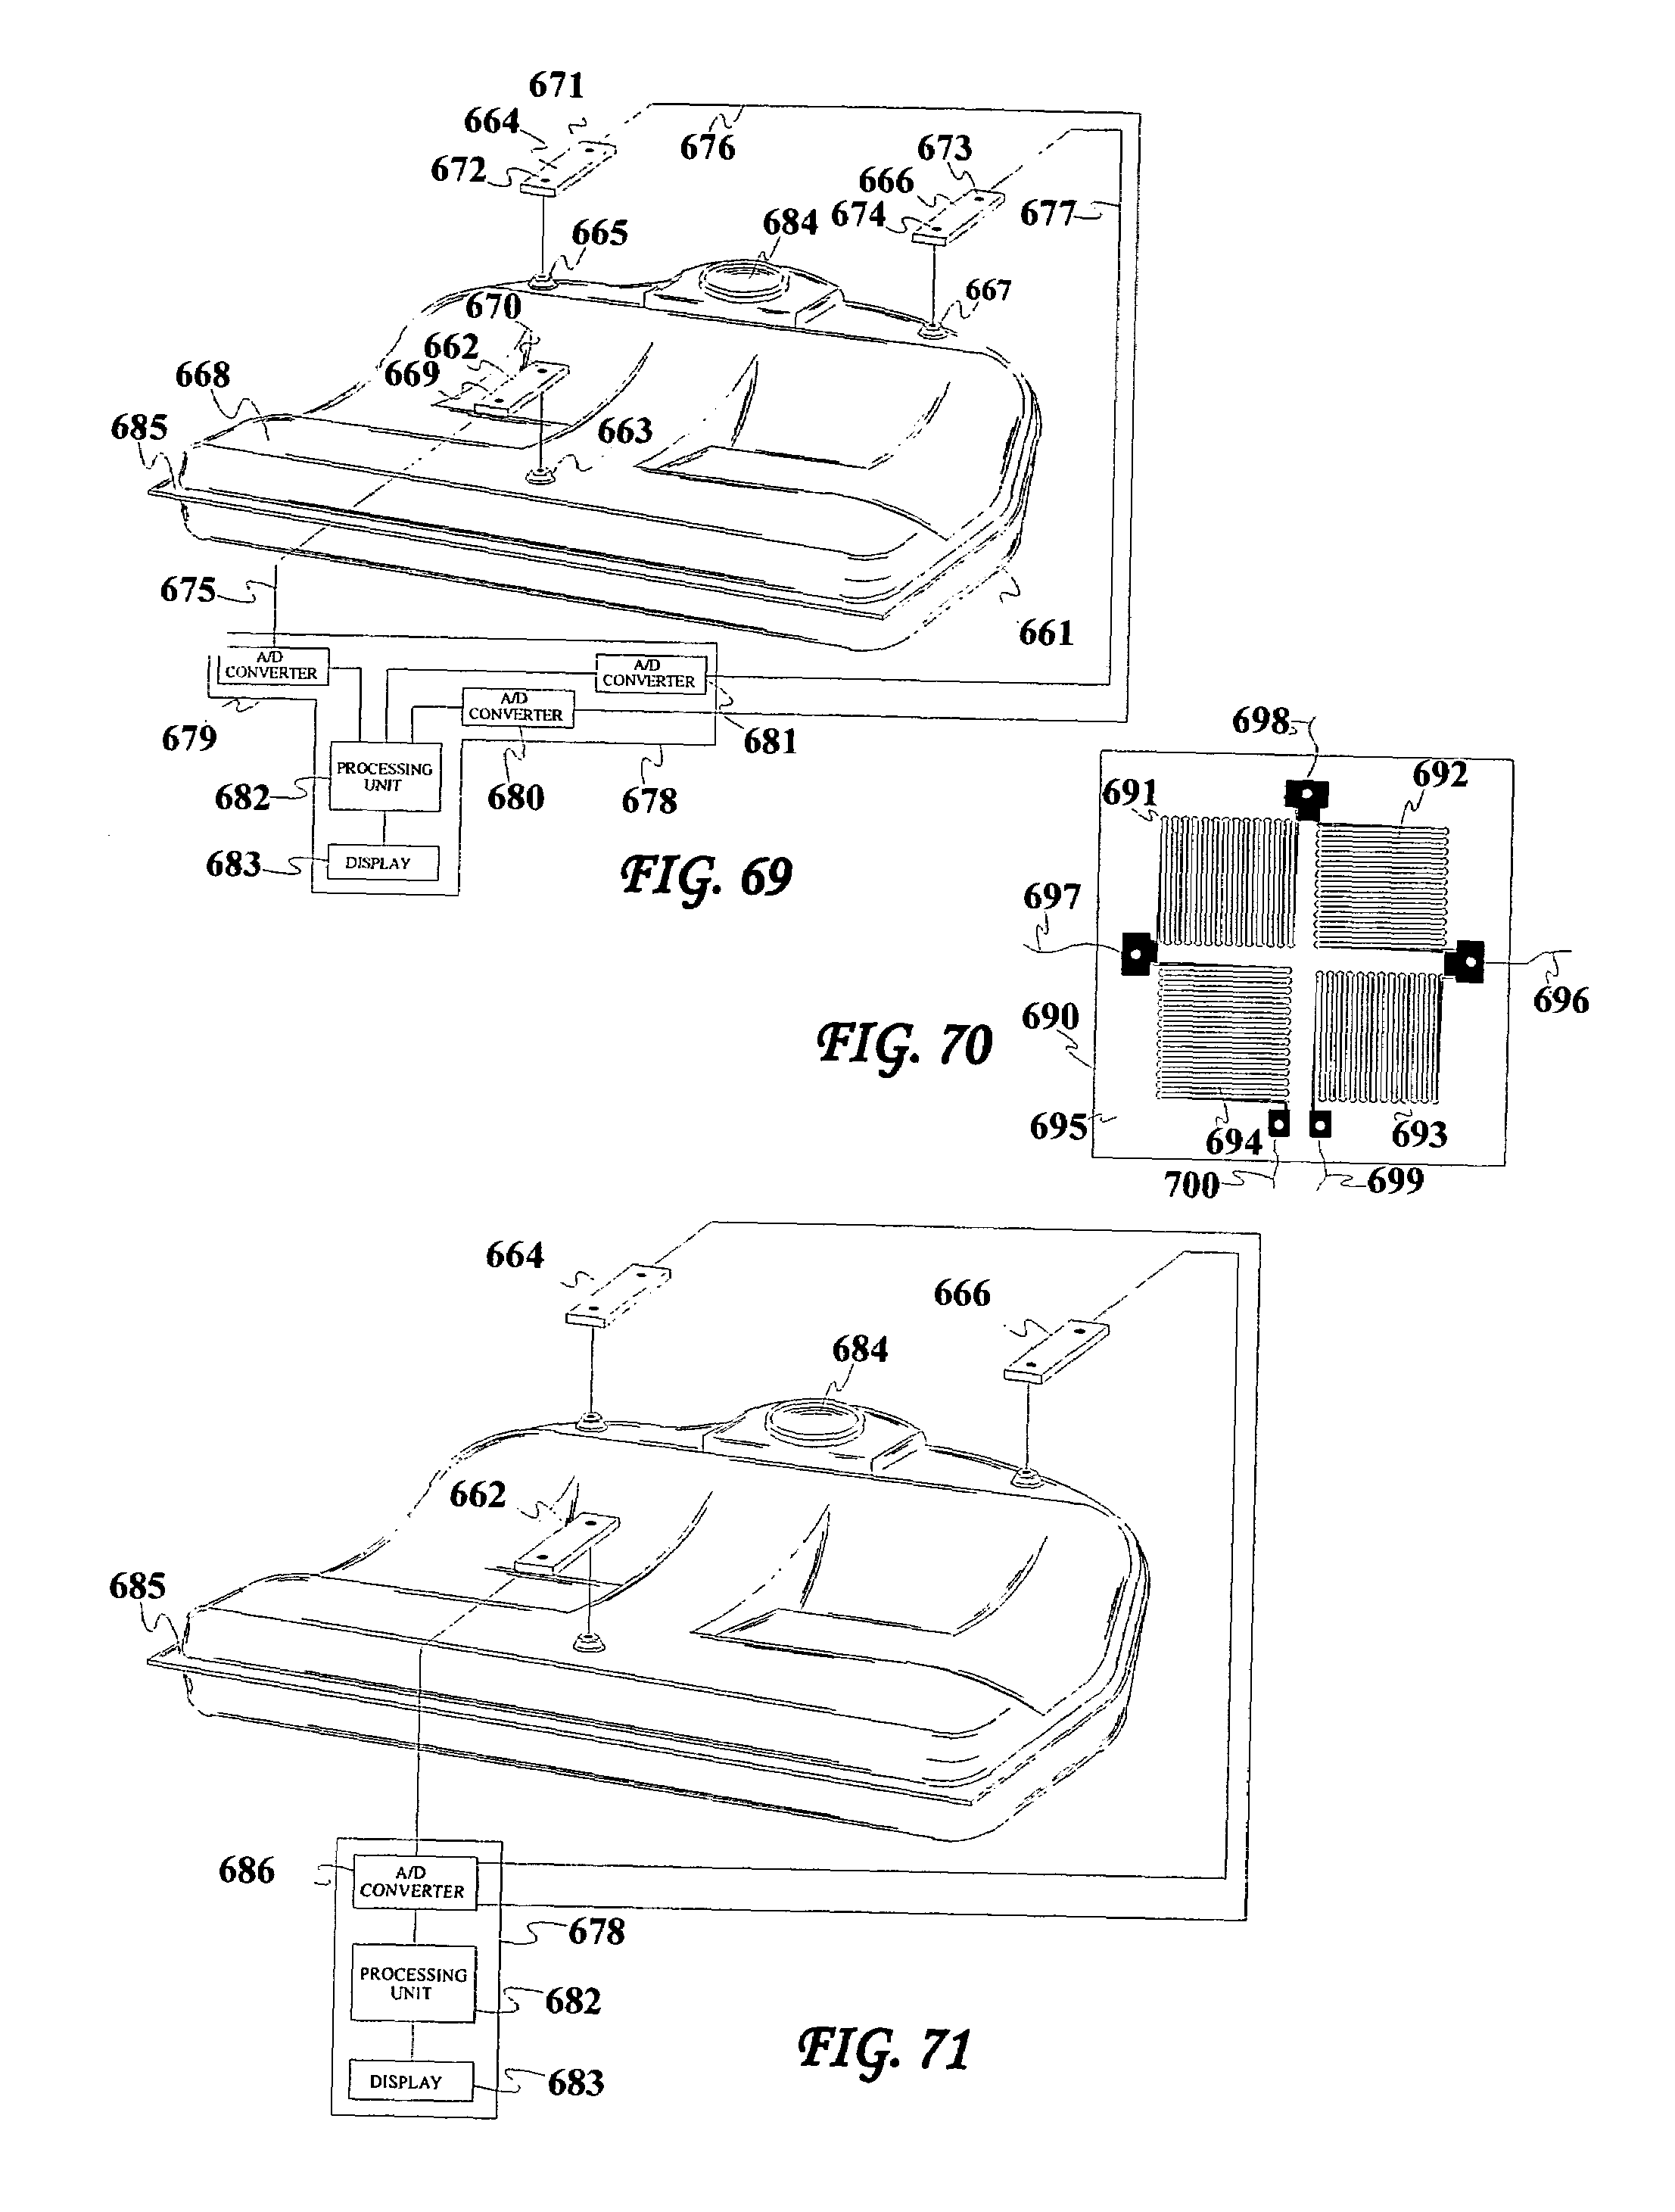 Patent Us 7103460 B1 Talk O View Topic Unique Dual Humbucker Wiring Suggestions Wanted Images